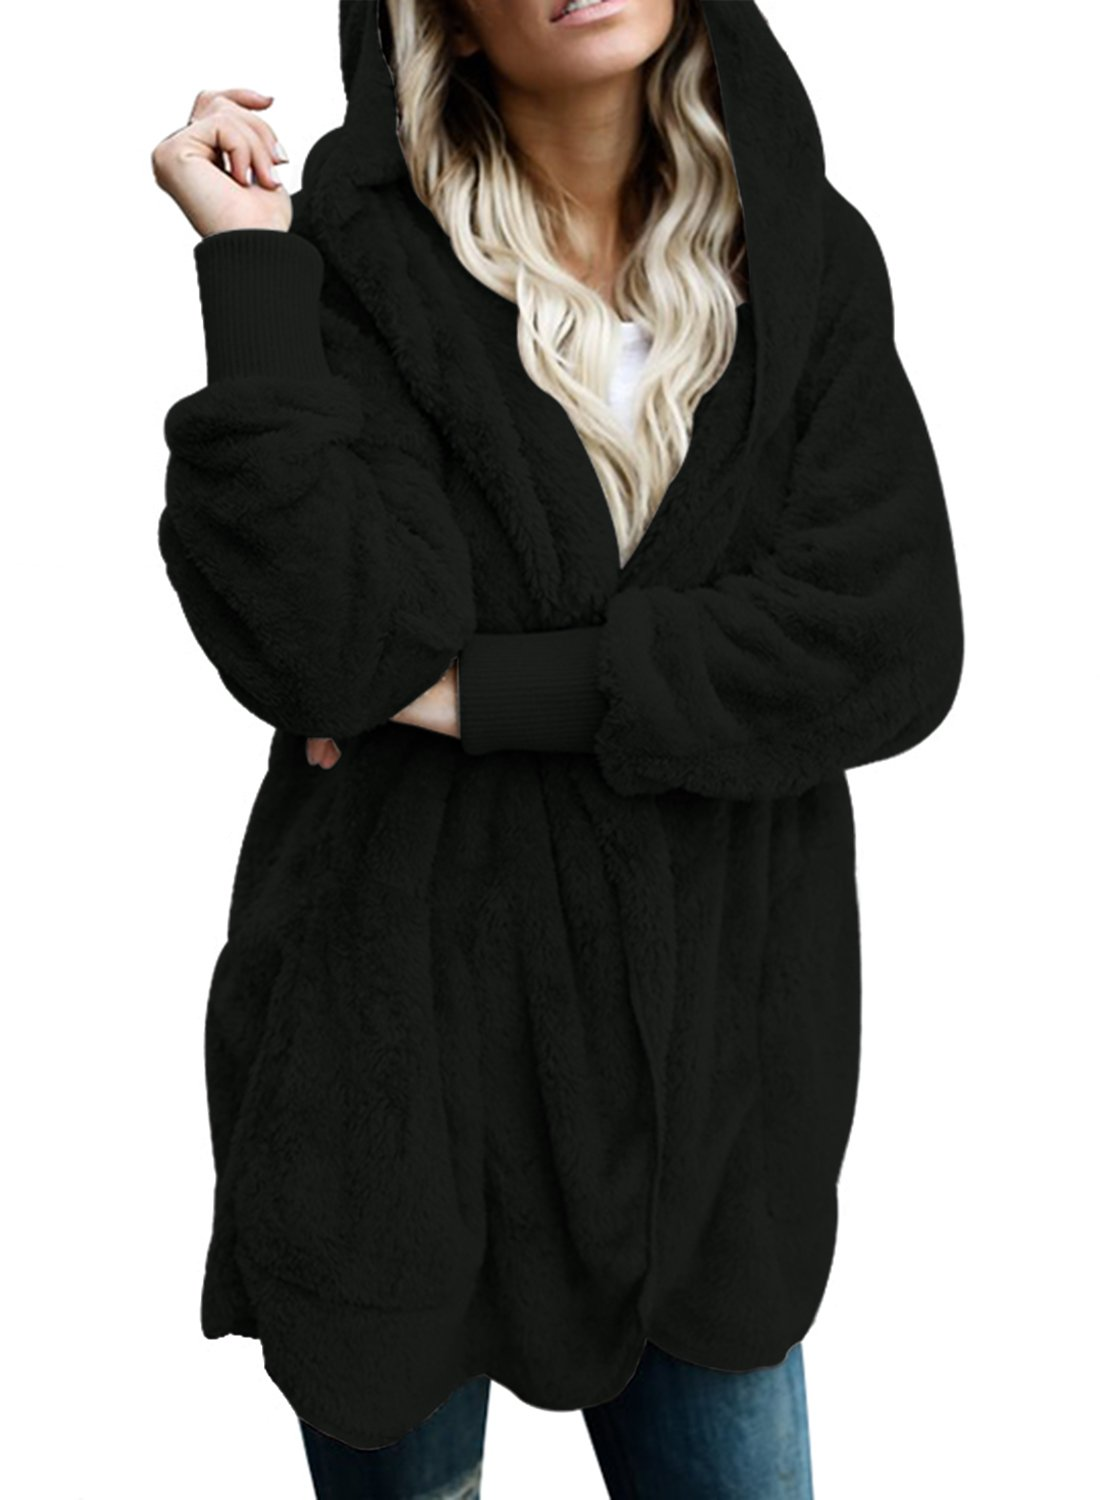 Dokotoo Womens Plus Size Fashion Ladies Fuzzy Winter Fall Open Front Long Sleeve Fluffy Hoodies Fleece Cardigan Sweater Jacket Coat Outwear Black XX-Large